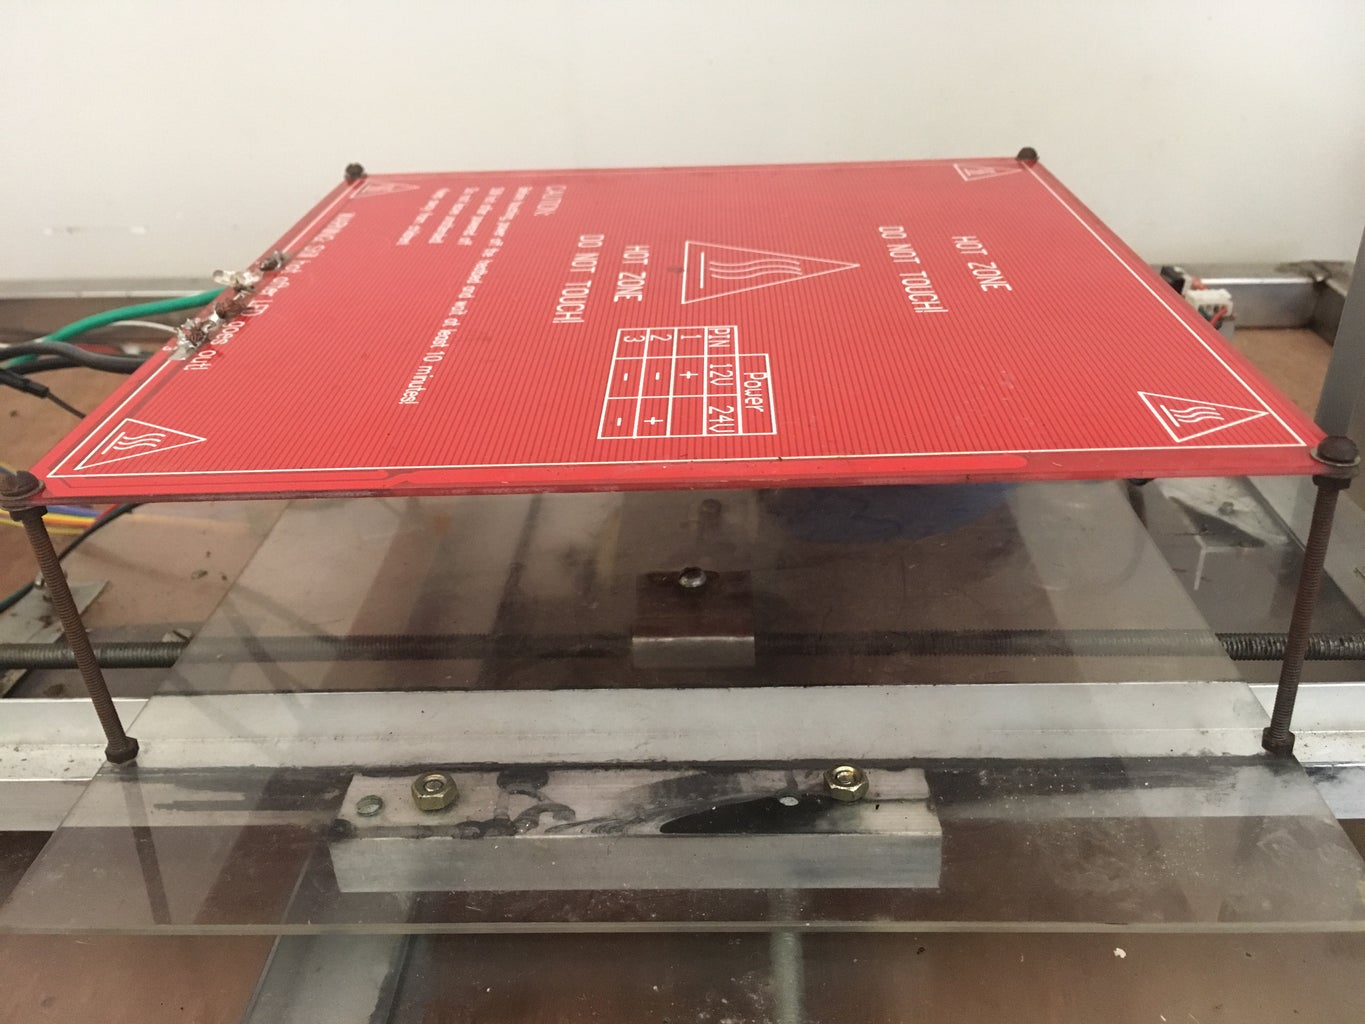 Attaching the Y Axis Platform and the Heated Bed